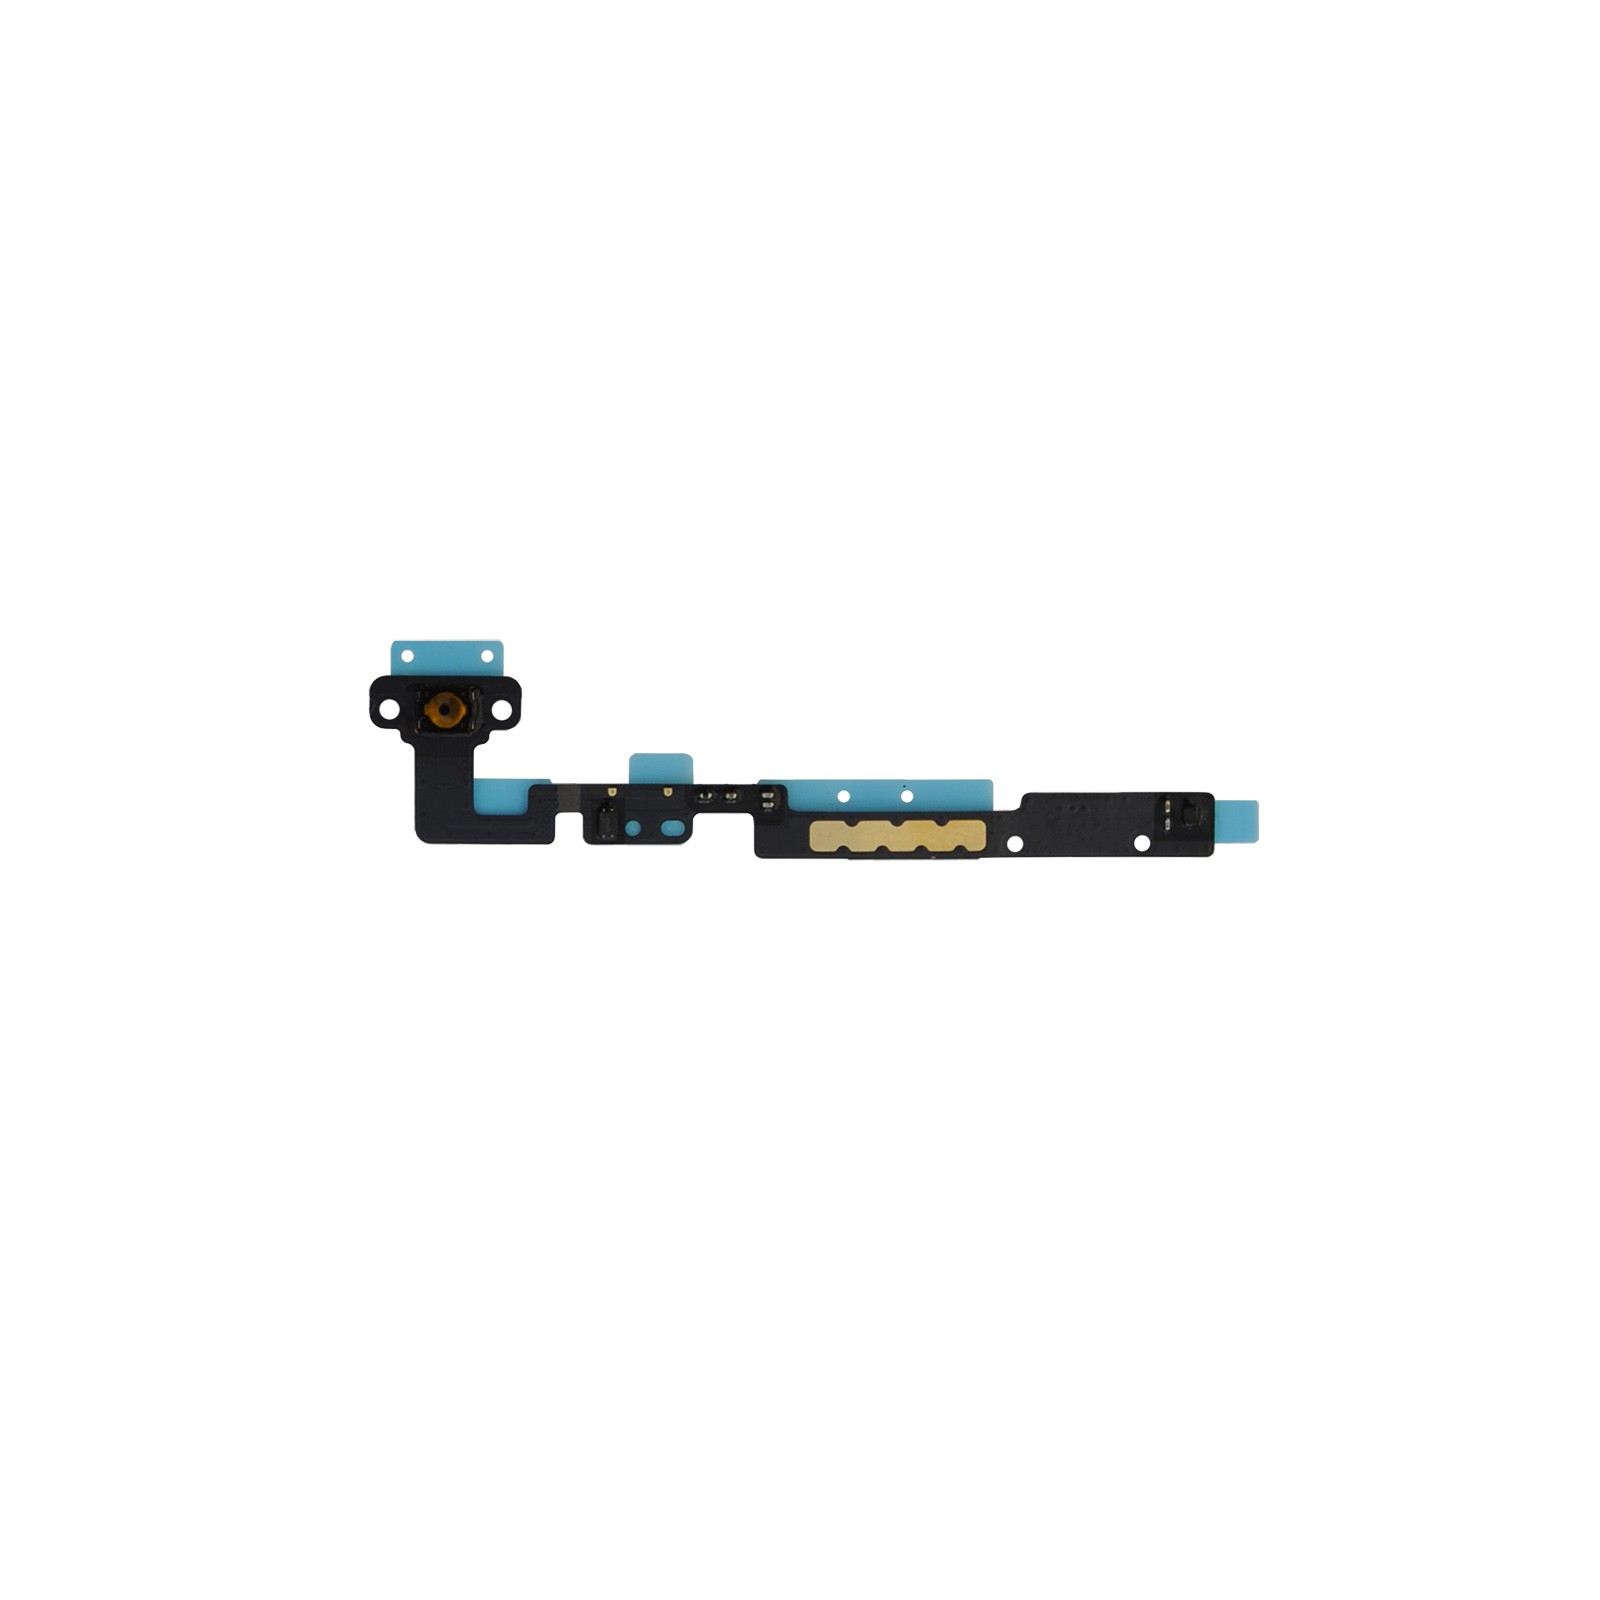 Home Button Switch Flex Cable Replacement For Ipad Mini 1 2 Touch Screen Ic Control Circuit Logic Board Connector